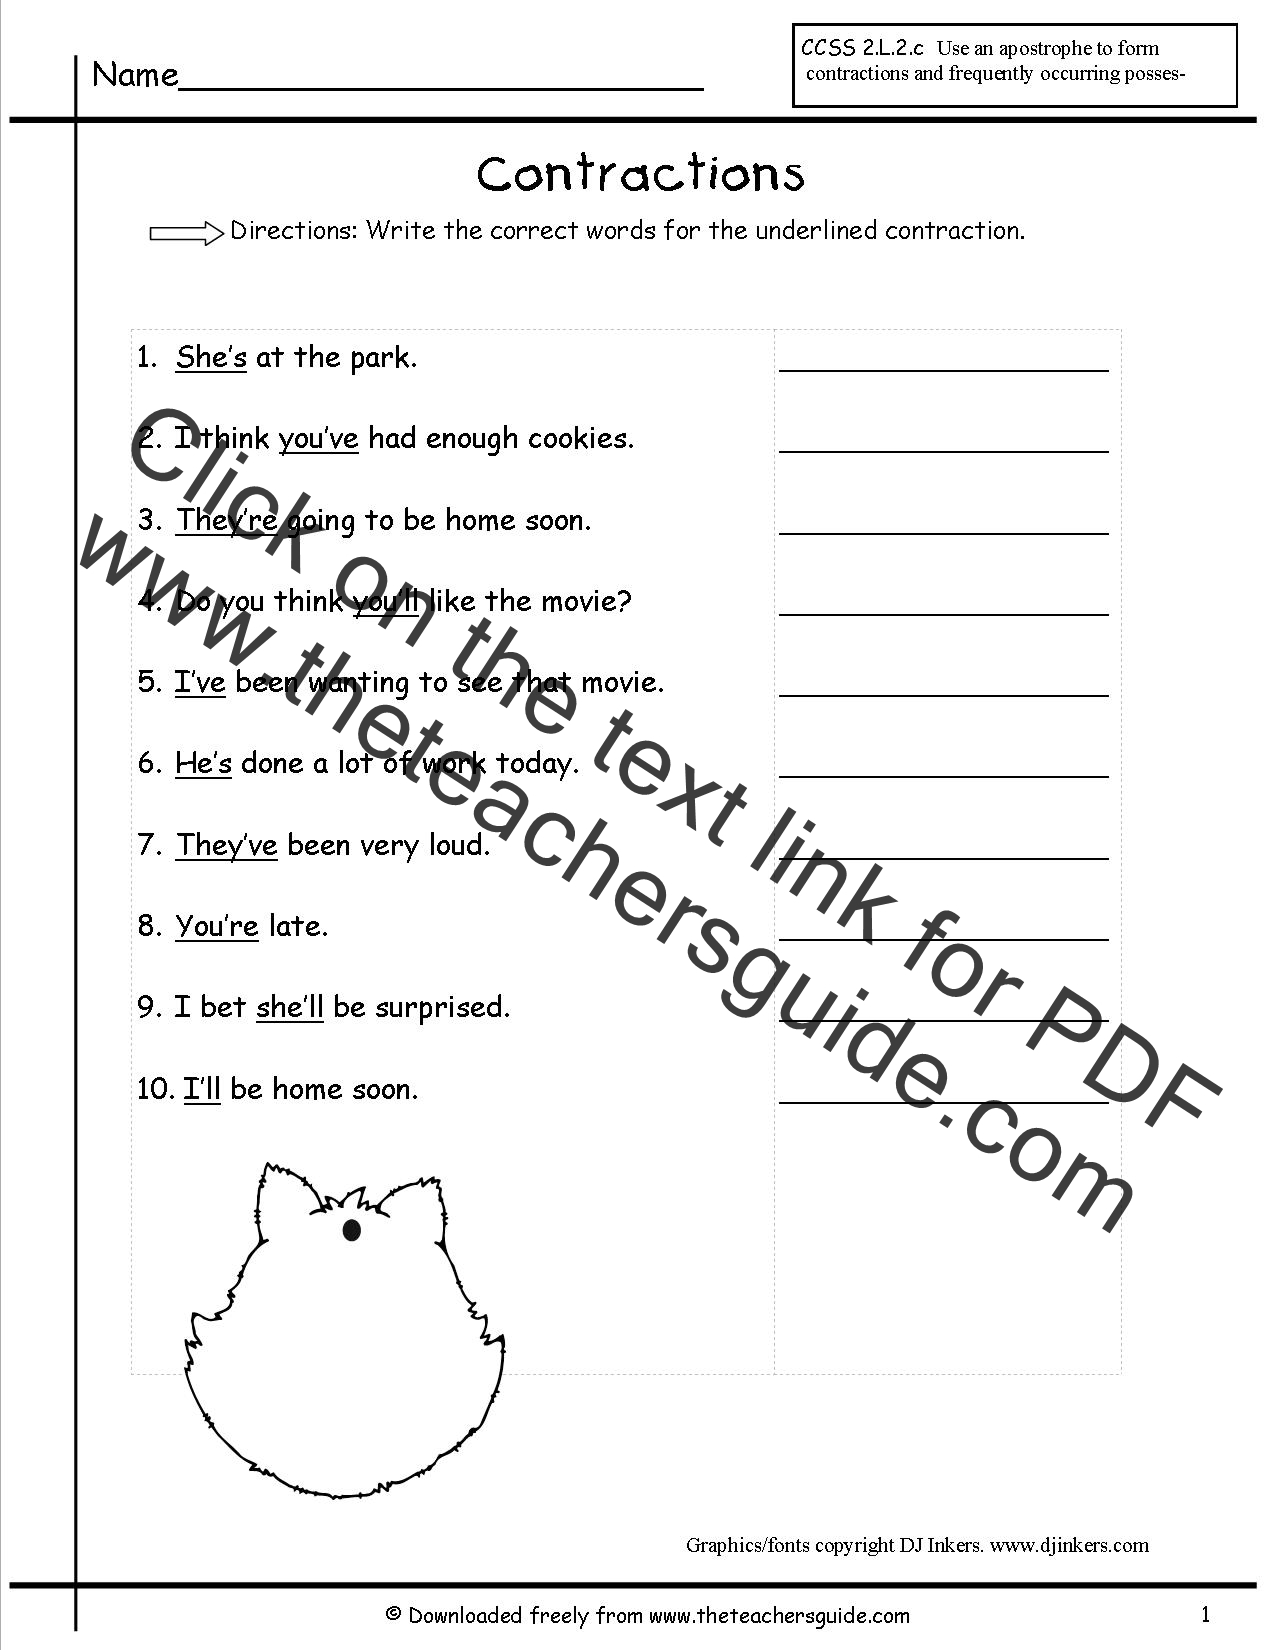 Contractions Worksheets from The Teacher's Guide